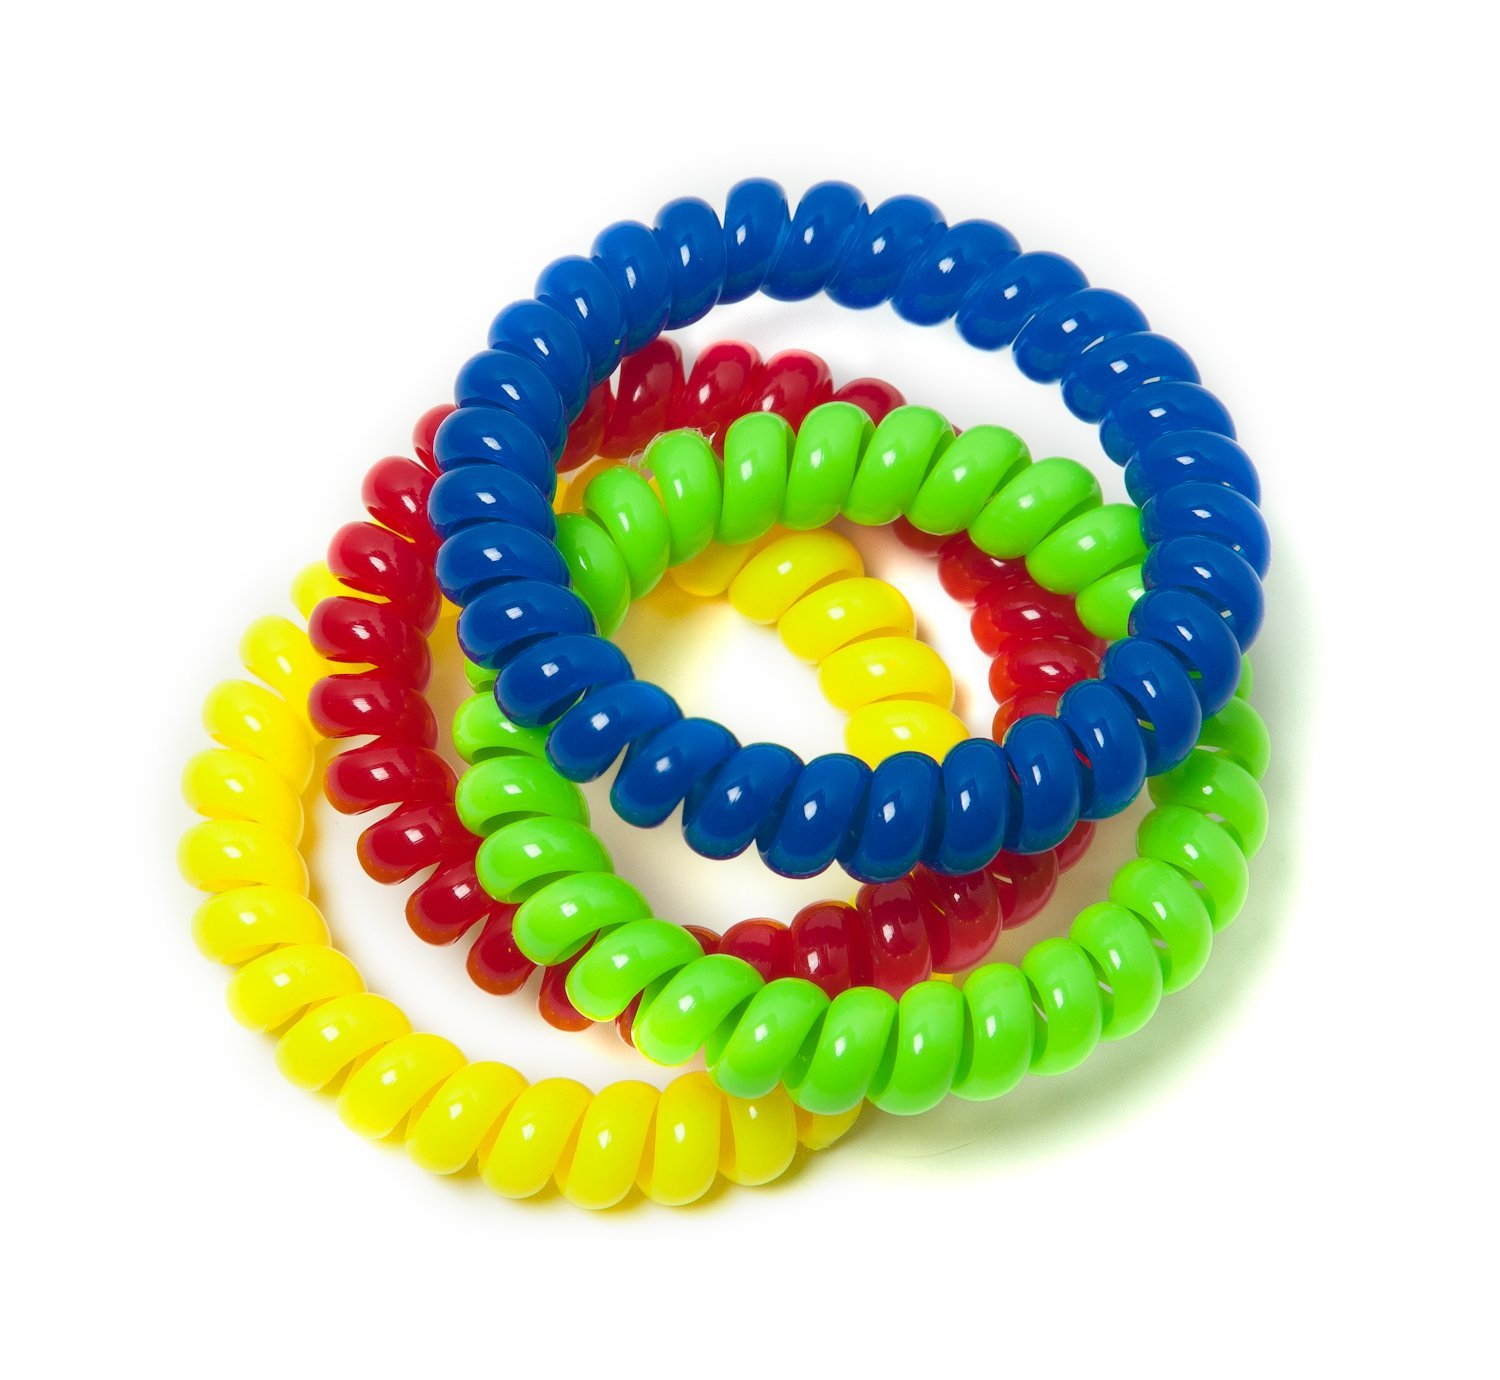 Amazon Chewable Jewelry Coil Necklace Fun Sensory